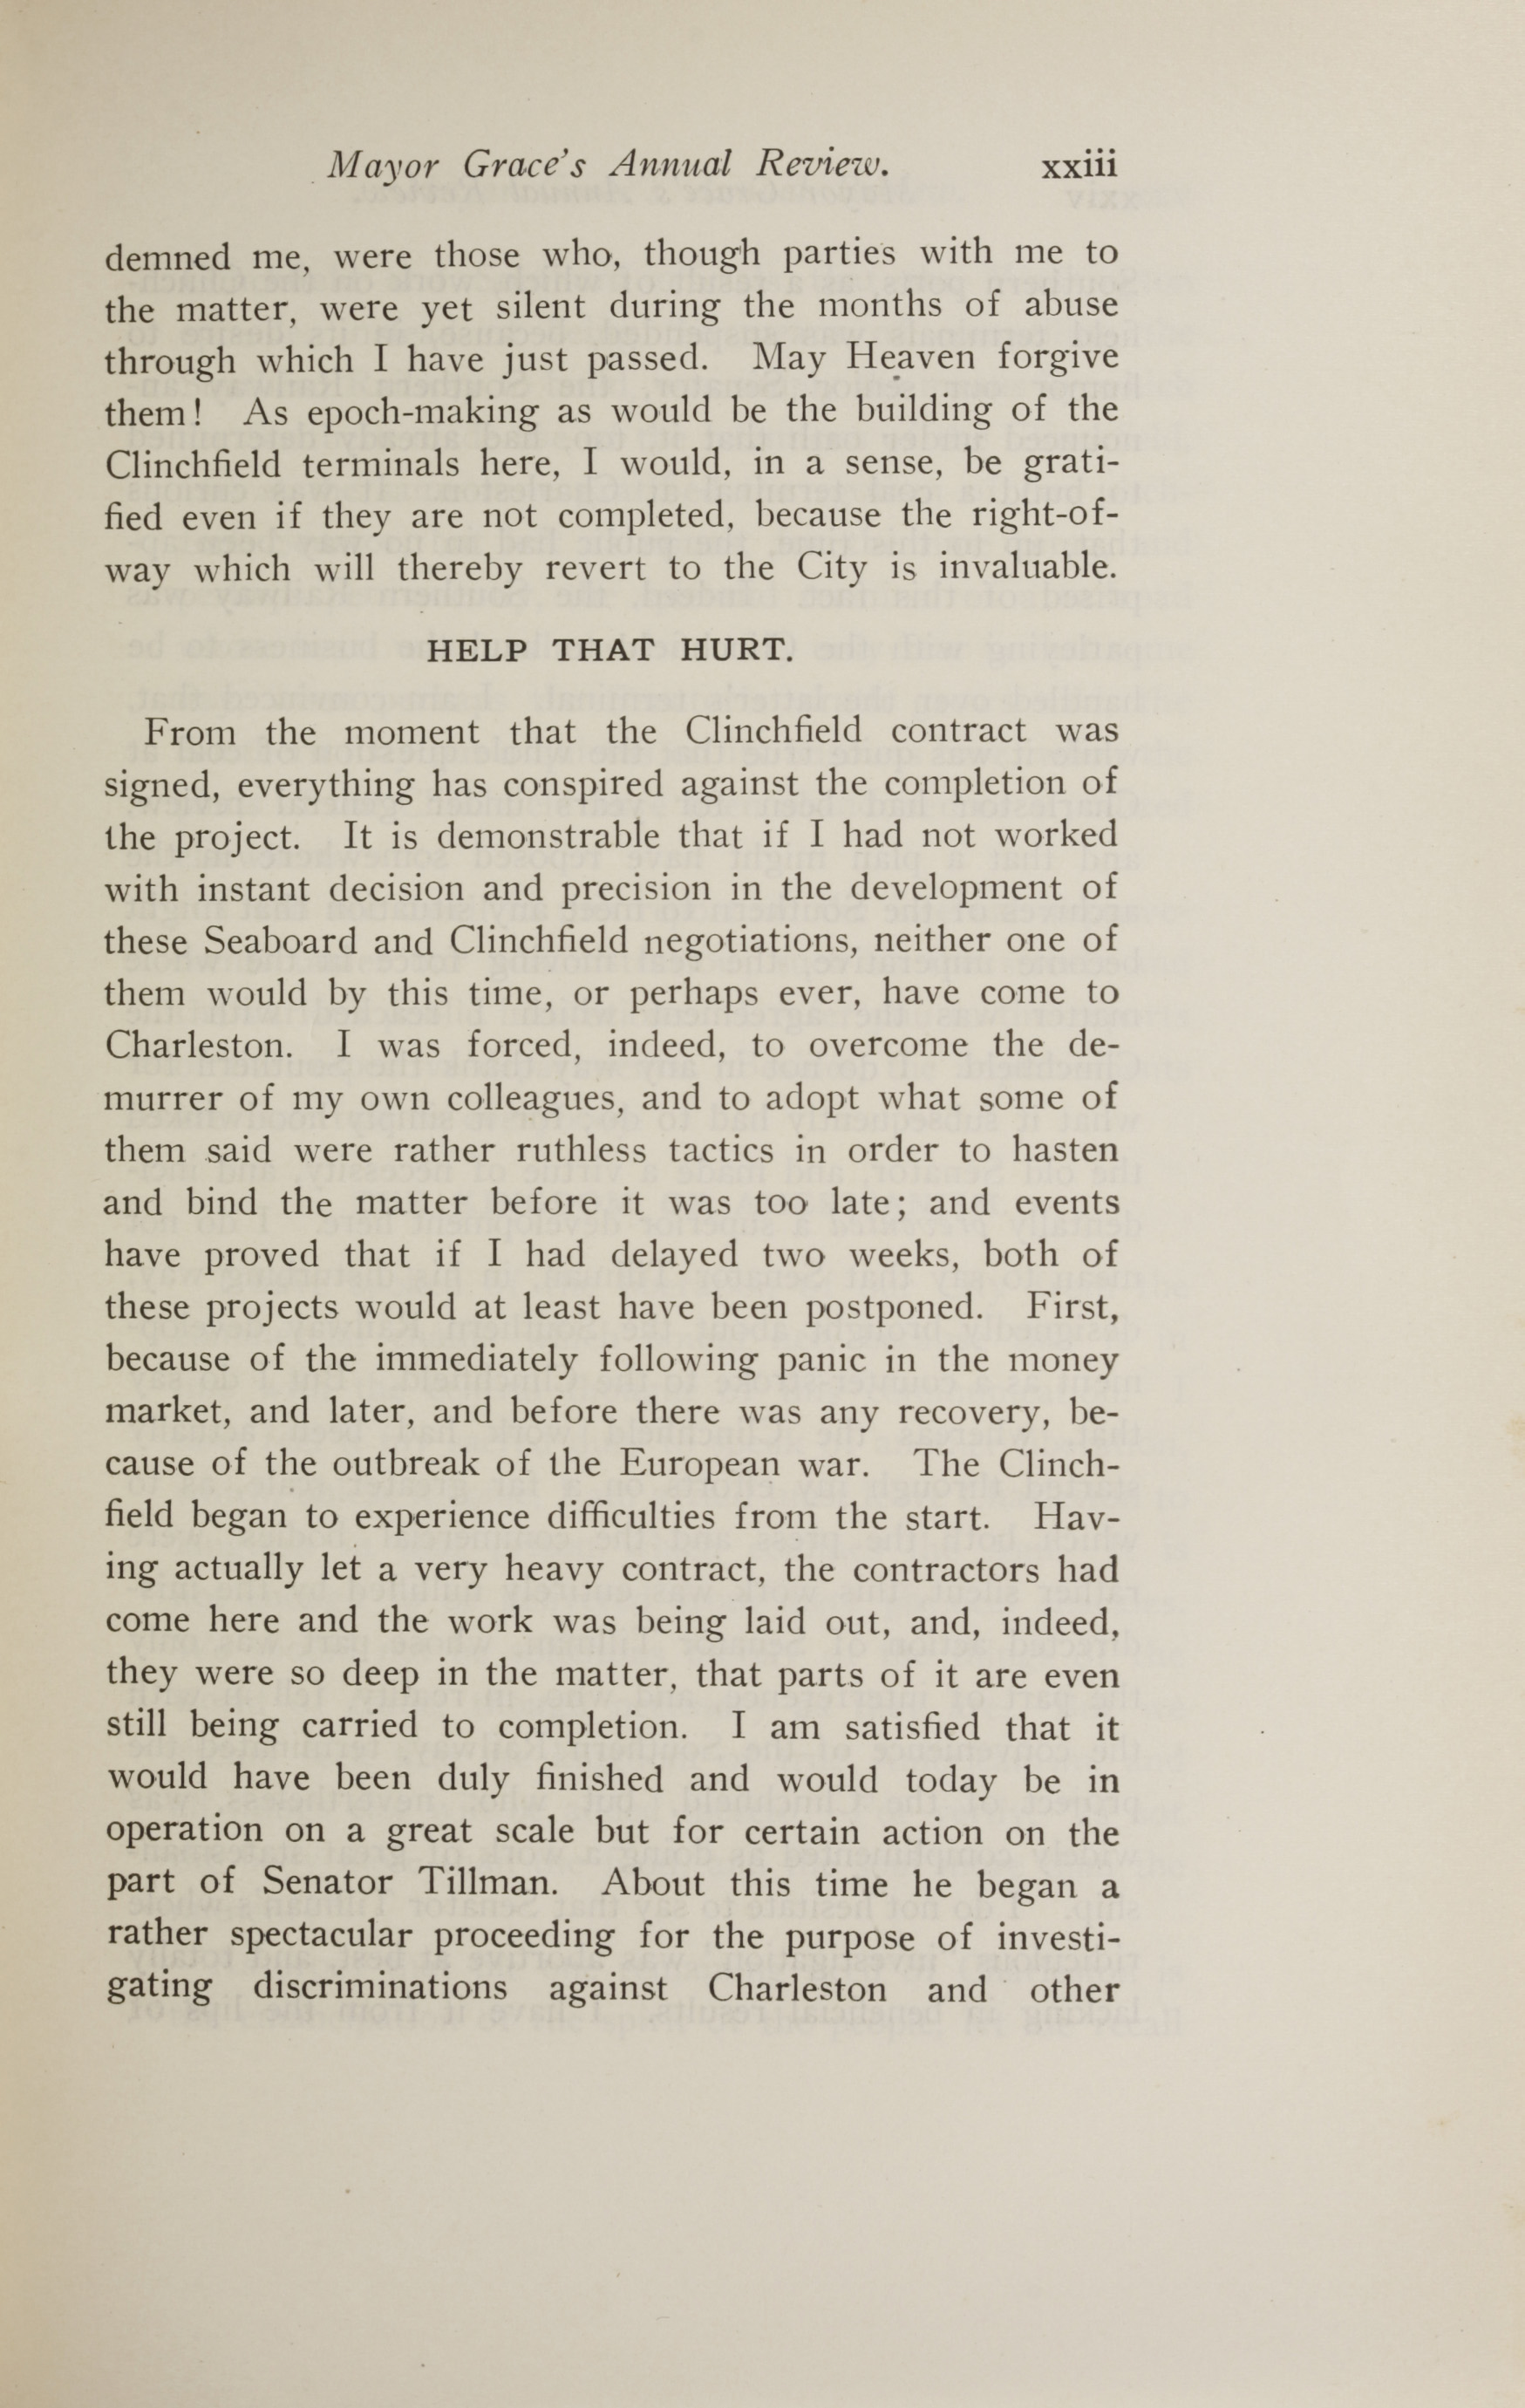 Charleston Yearbook, 1914, page xxiii